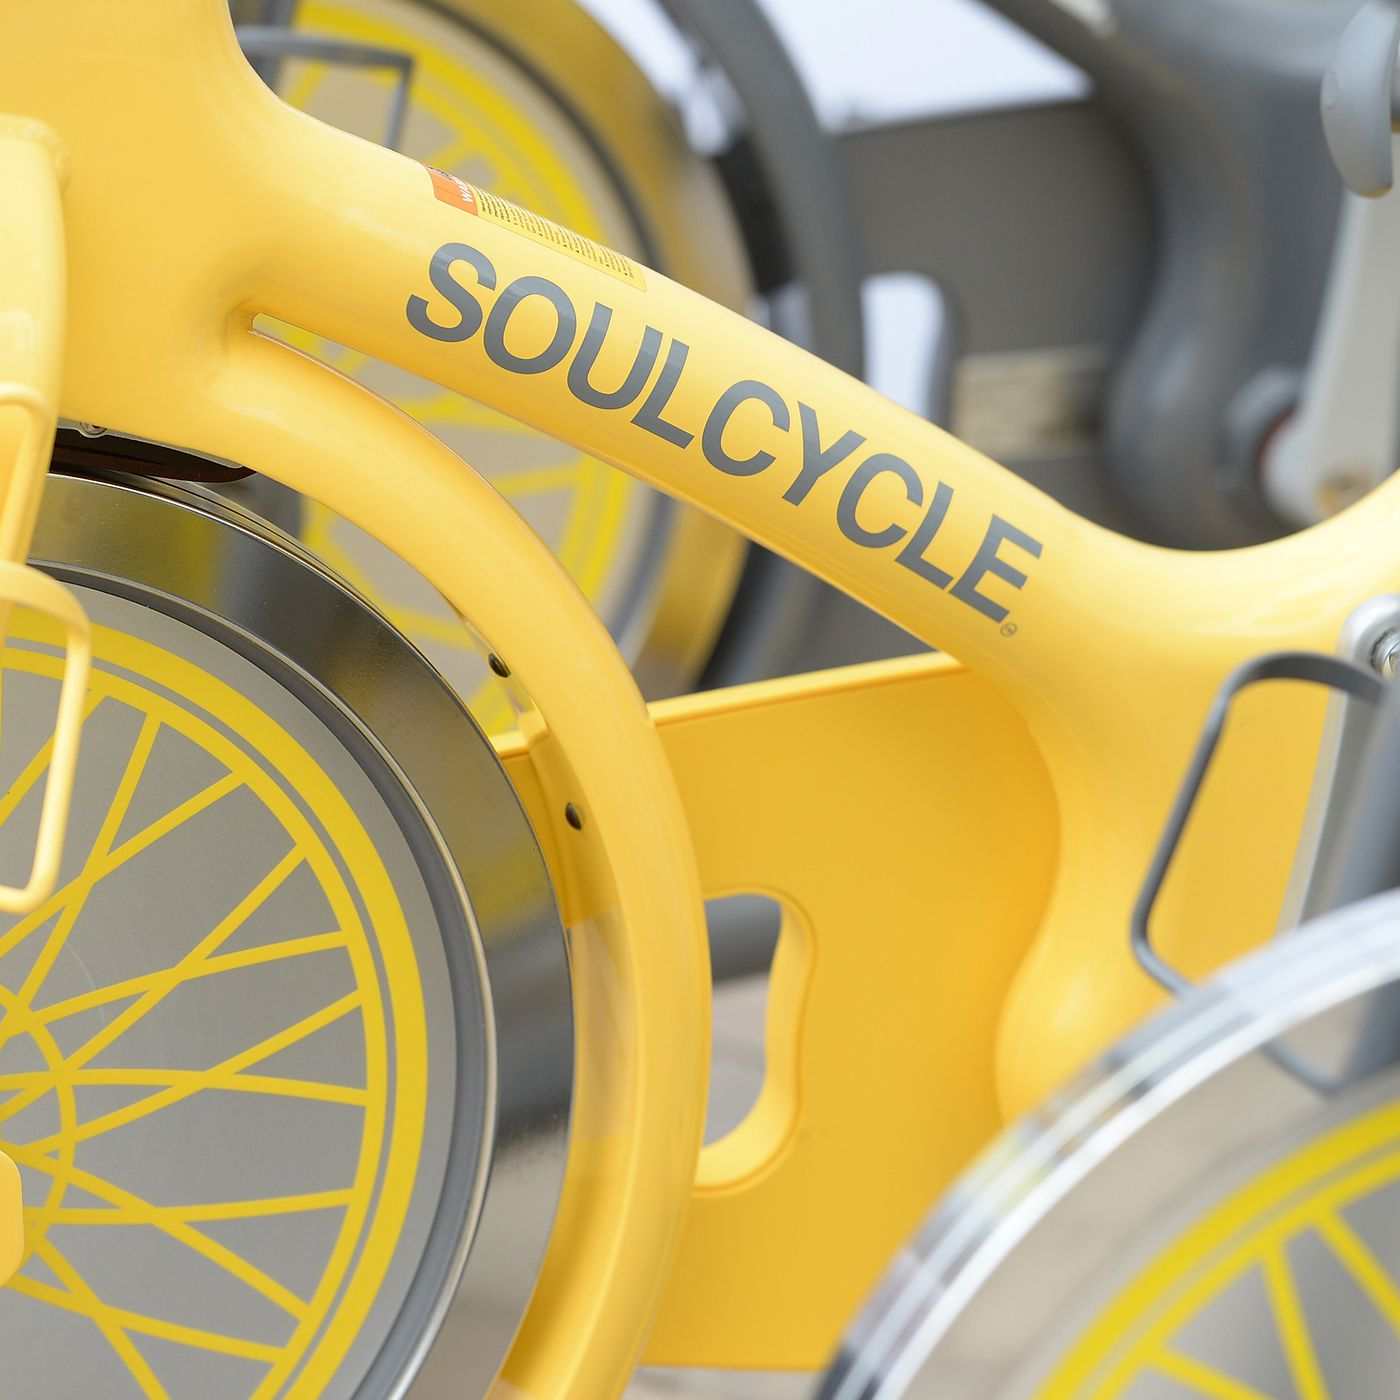 The songs of summer, in 5 SoulCycle playlists - Vox